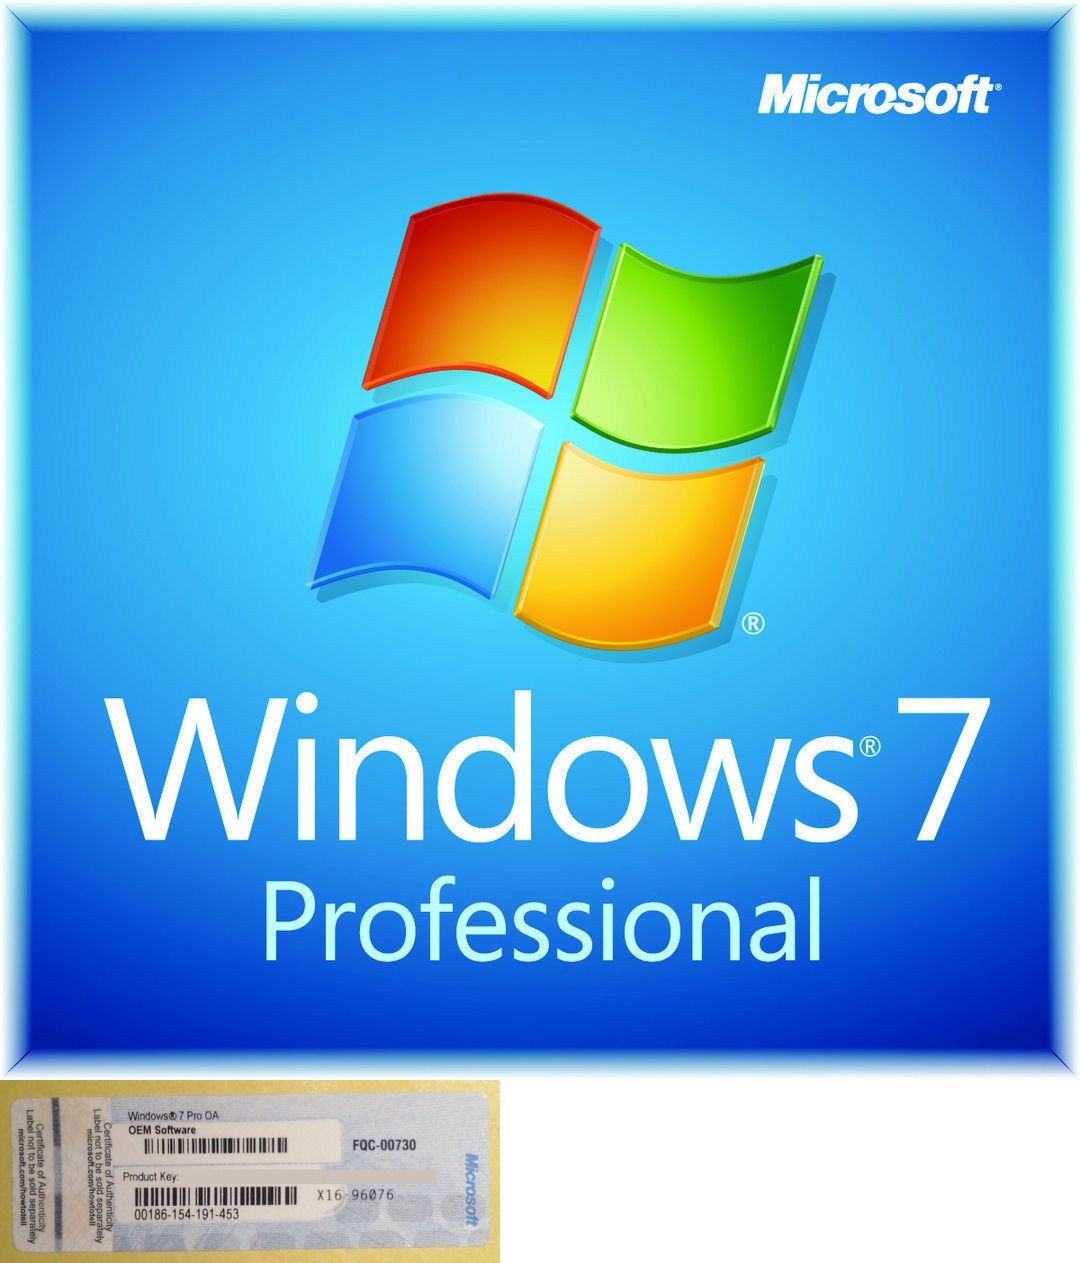 where can i buy a windows 7 professional product key